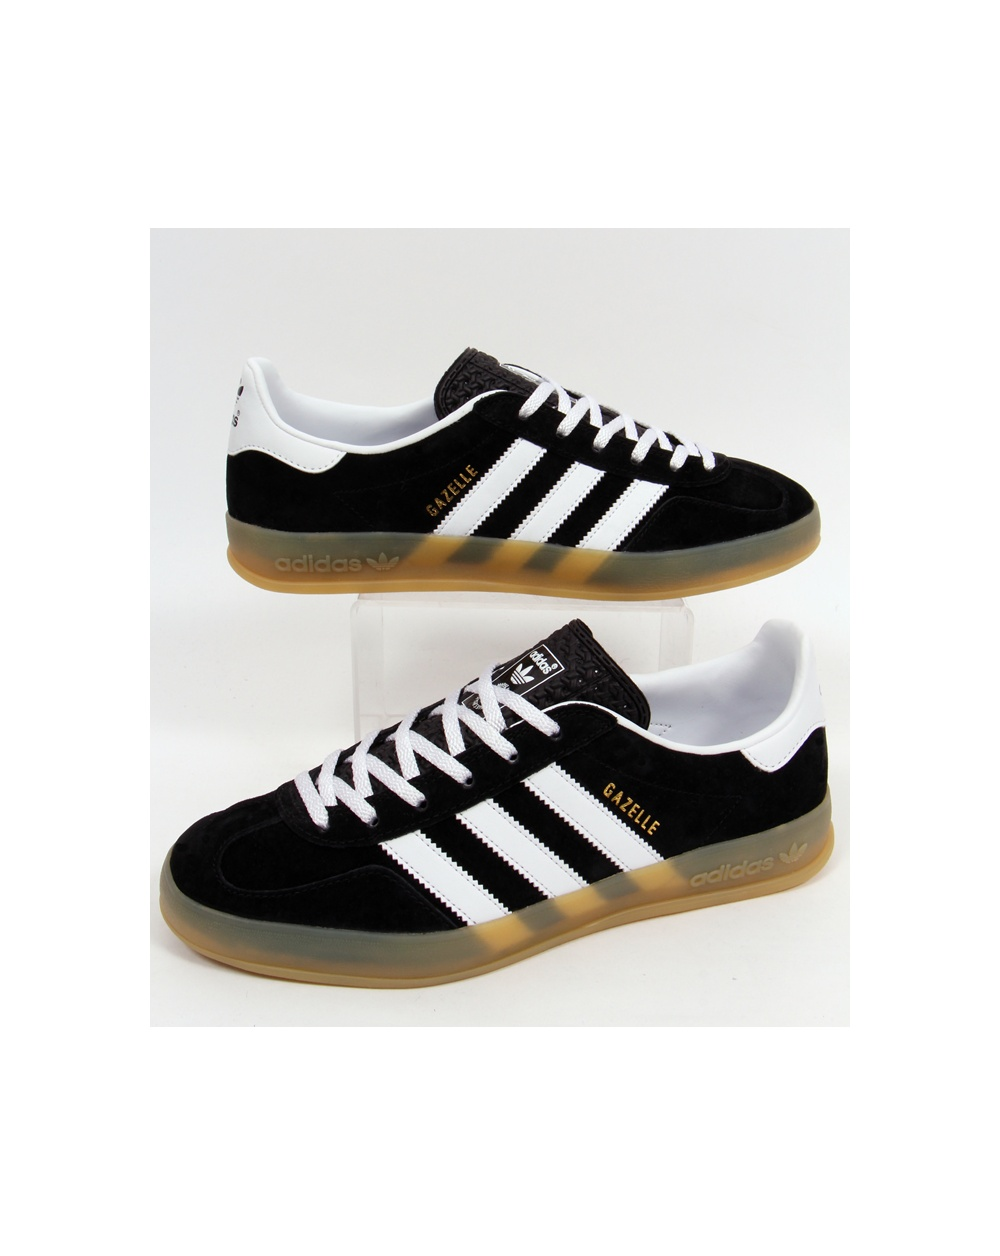 Buy cheap adidas gazelle indoor black and white >Up to OFF58 ...